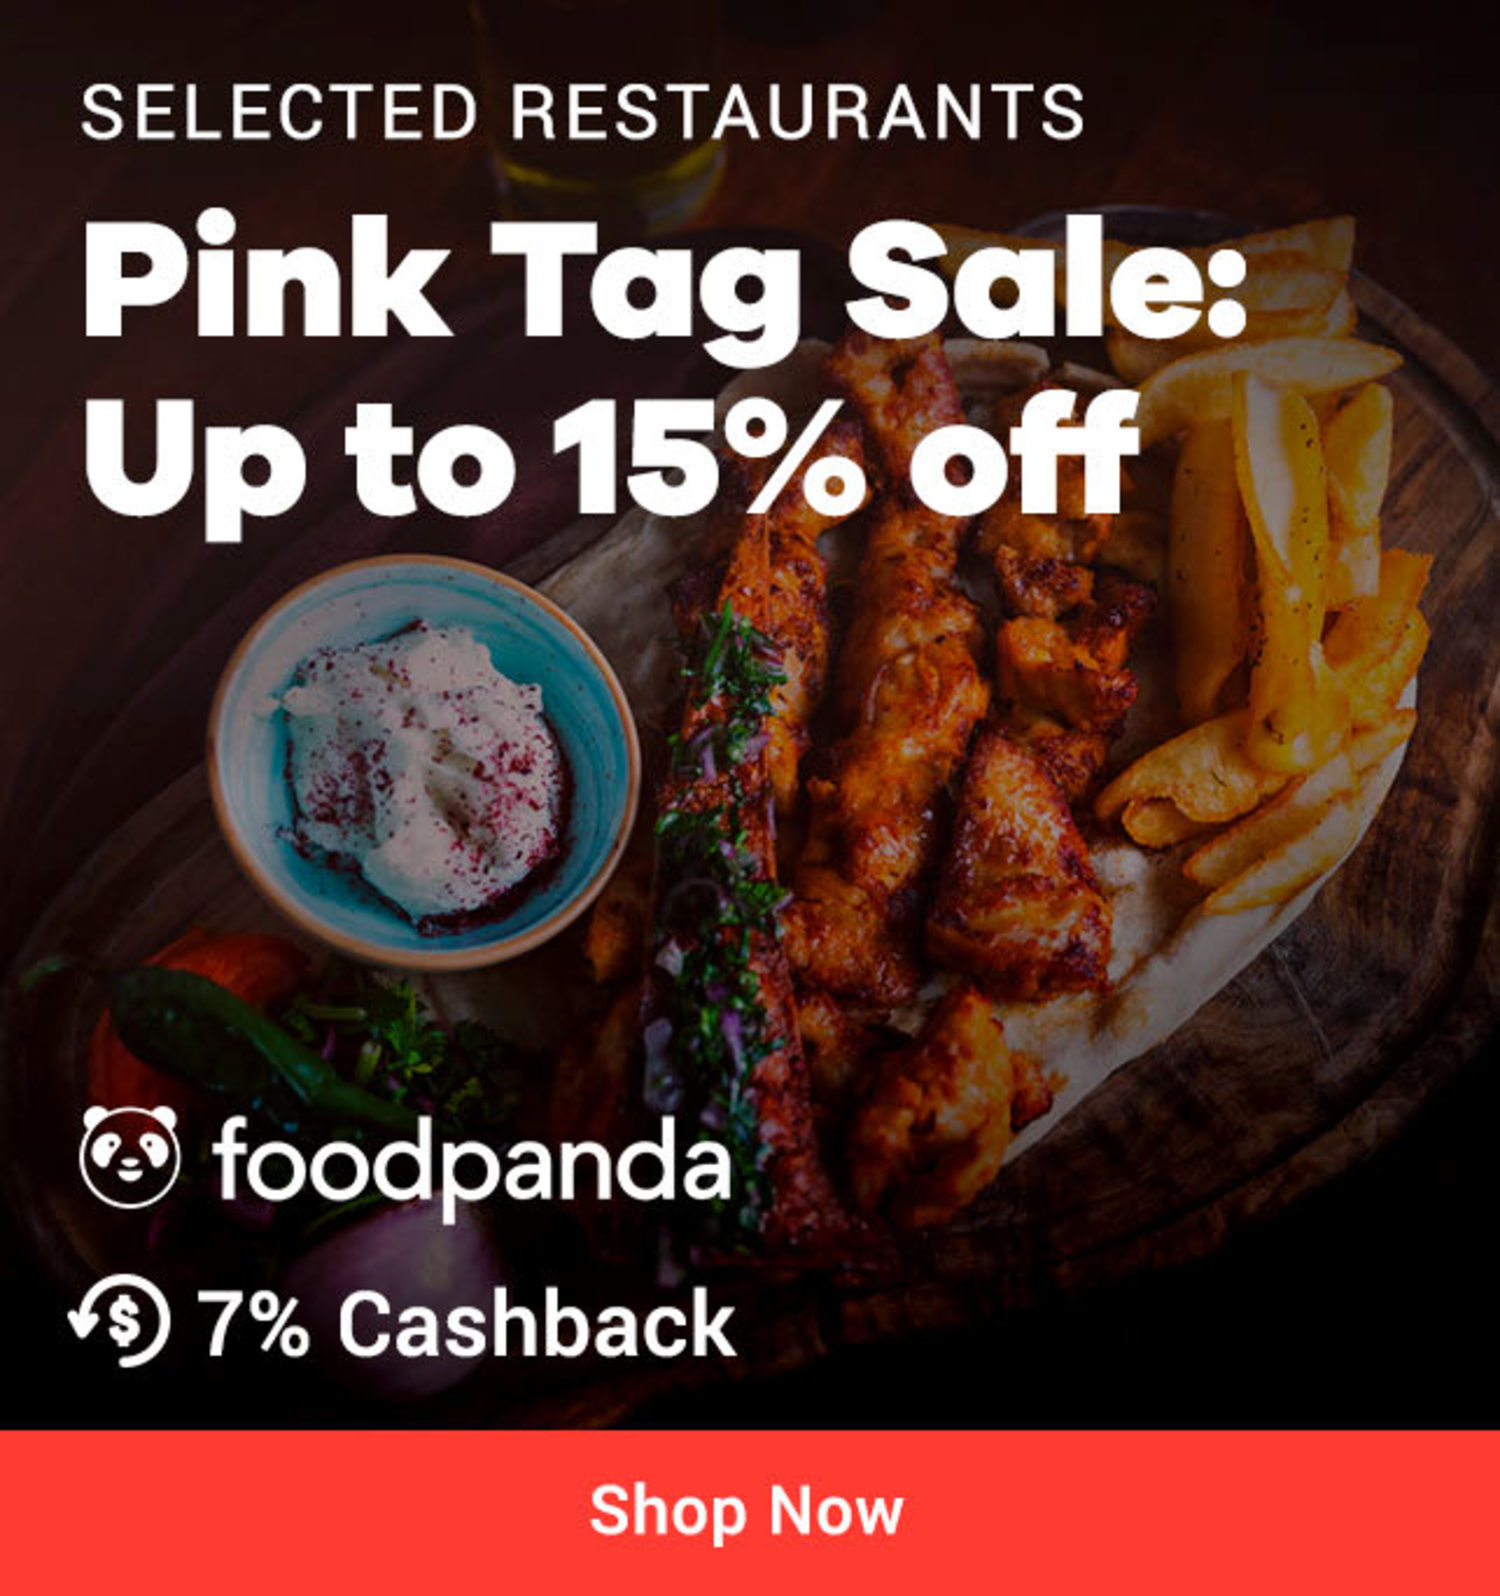 foodpanda Pink Tag Sale: Up to 15% off on selected restaurants + 7% Cashback